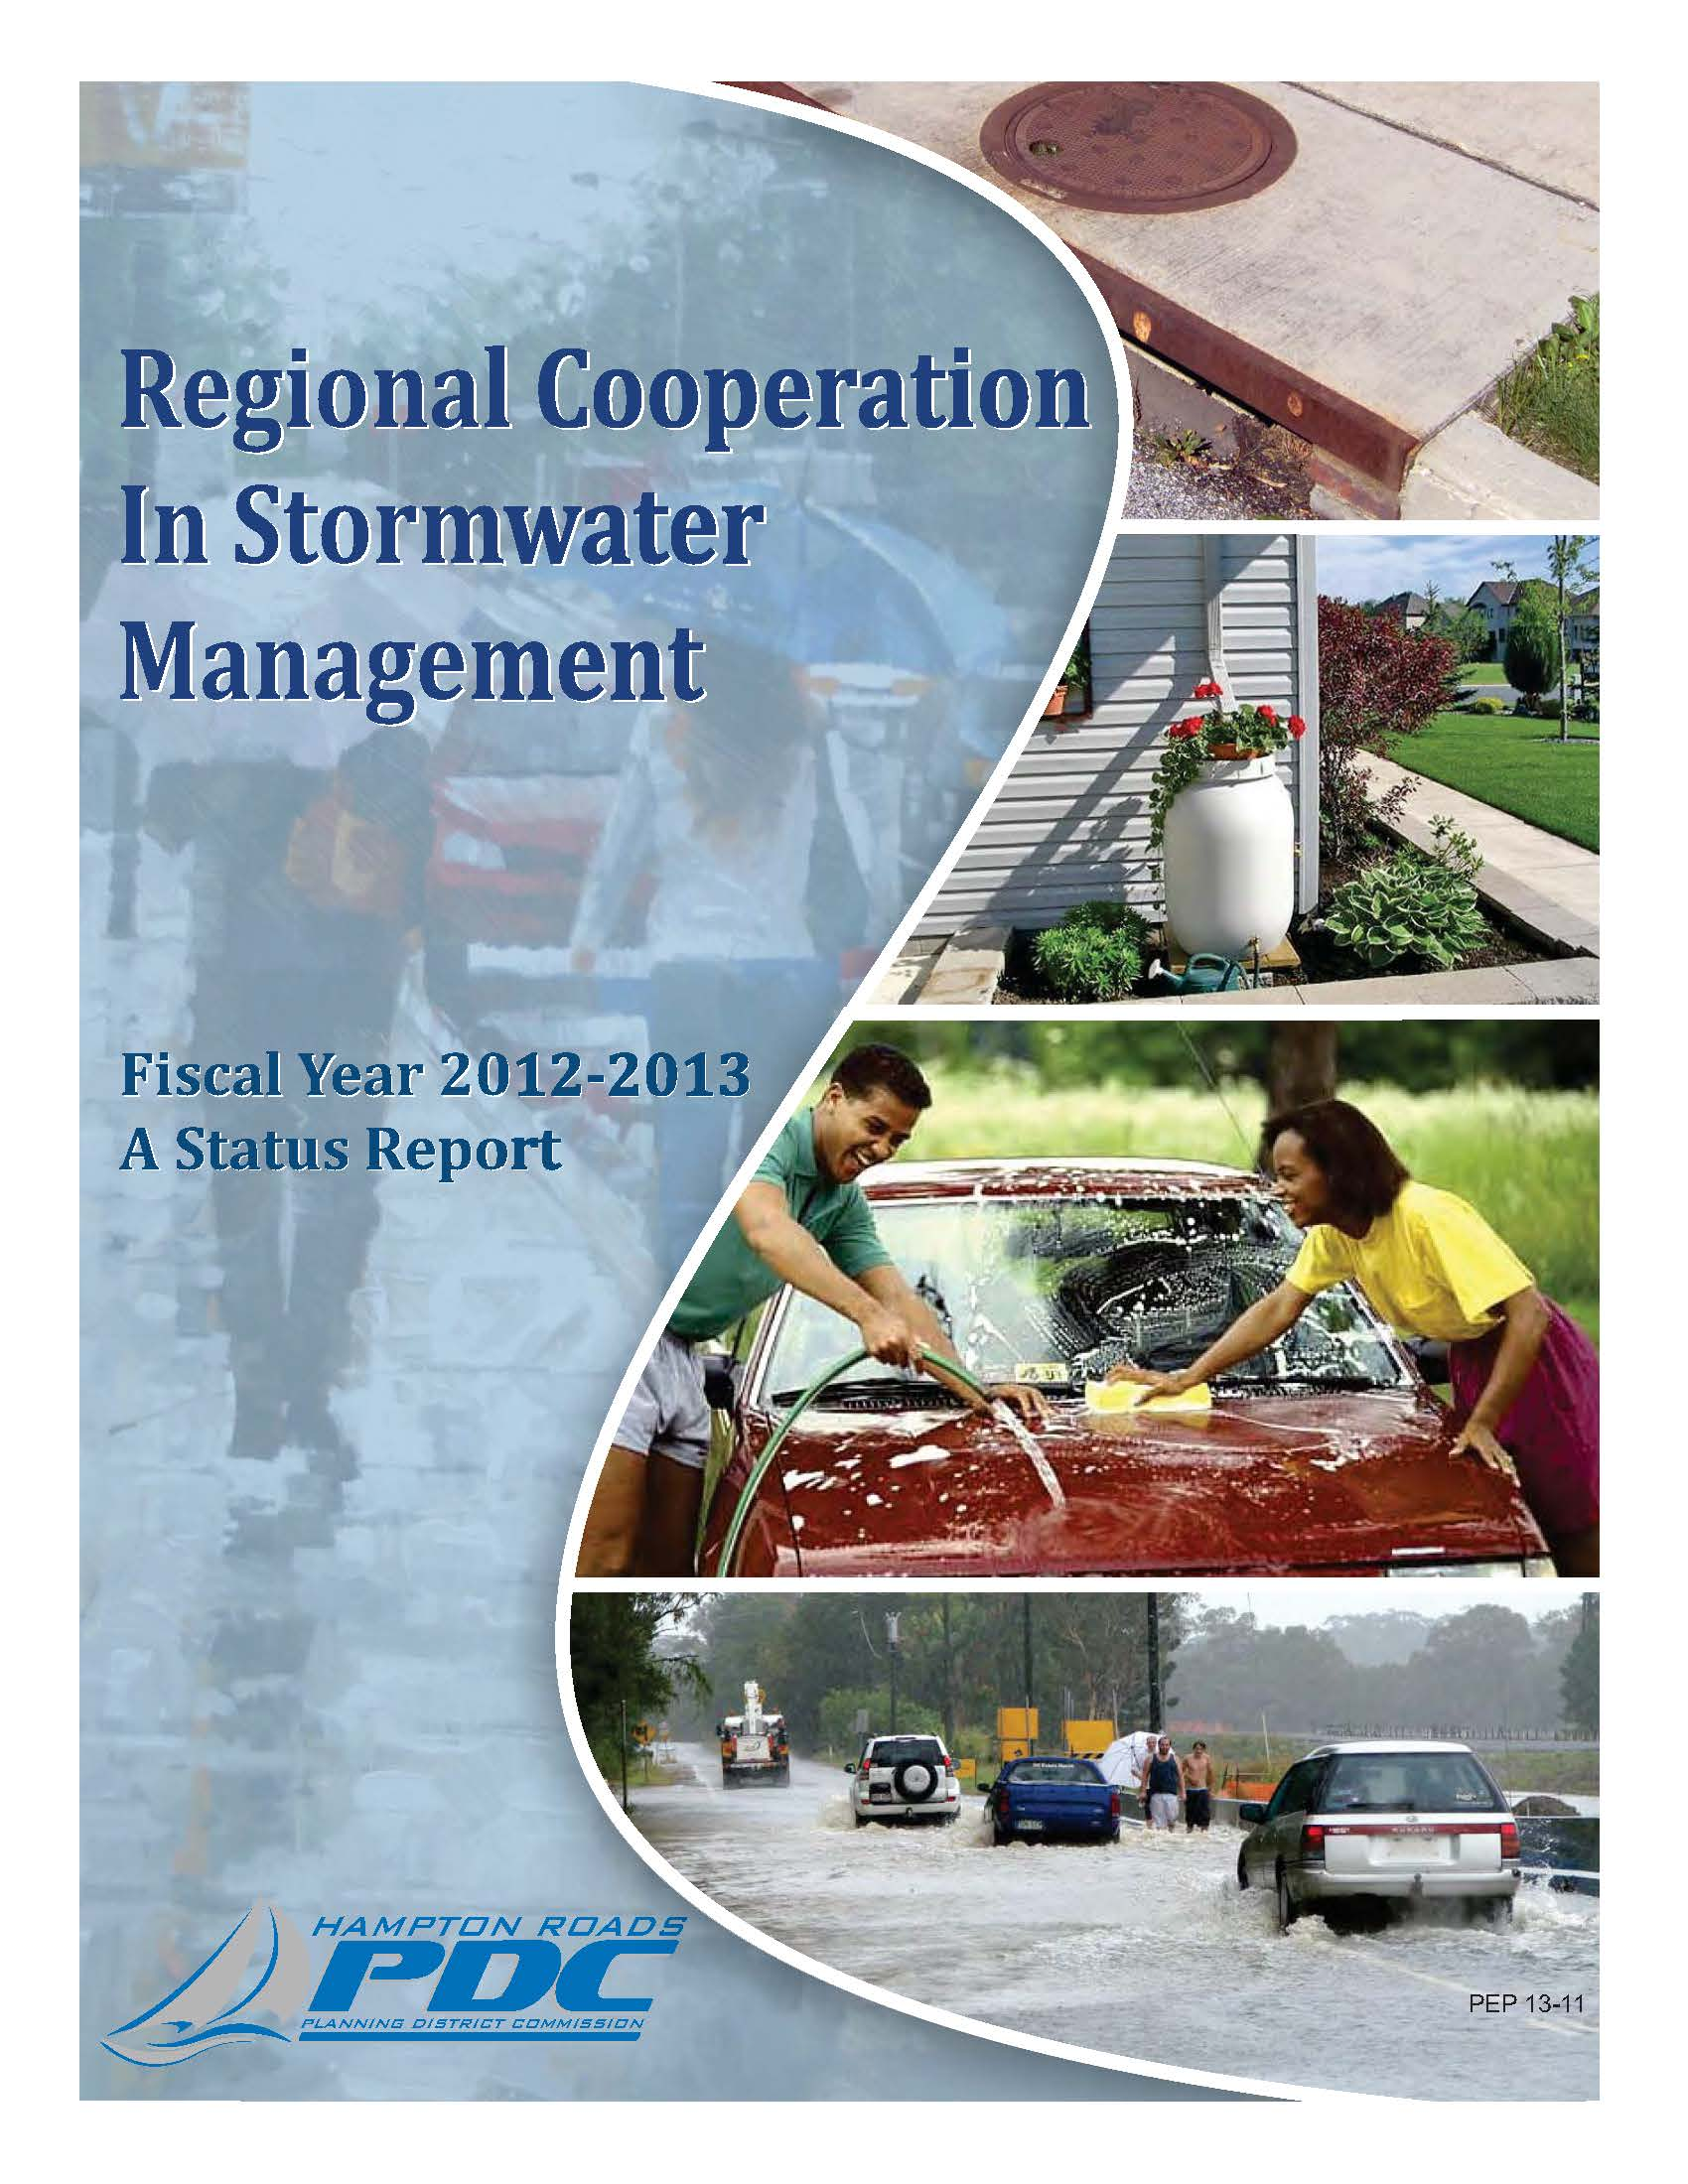 Cover Image Regional Cooperation in Stormwater Management